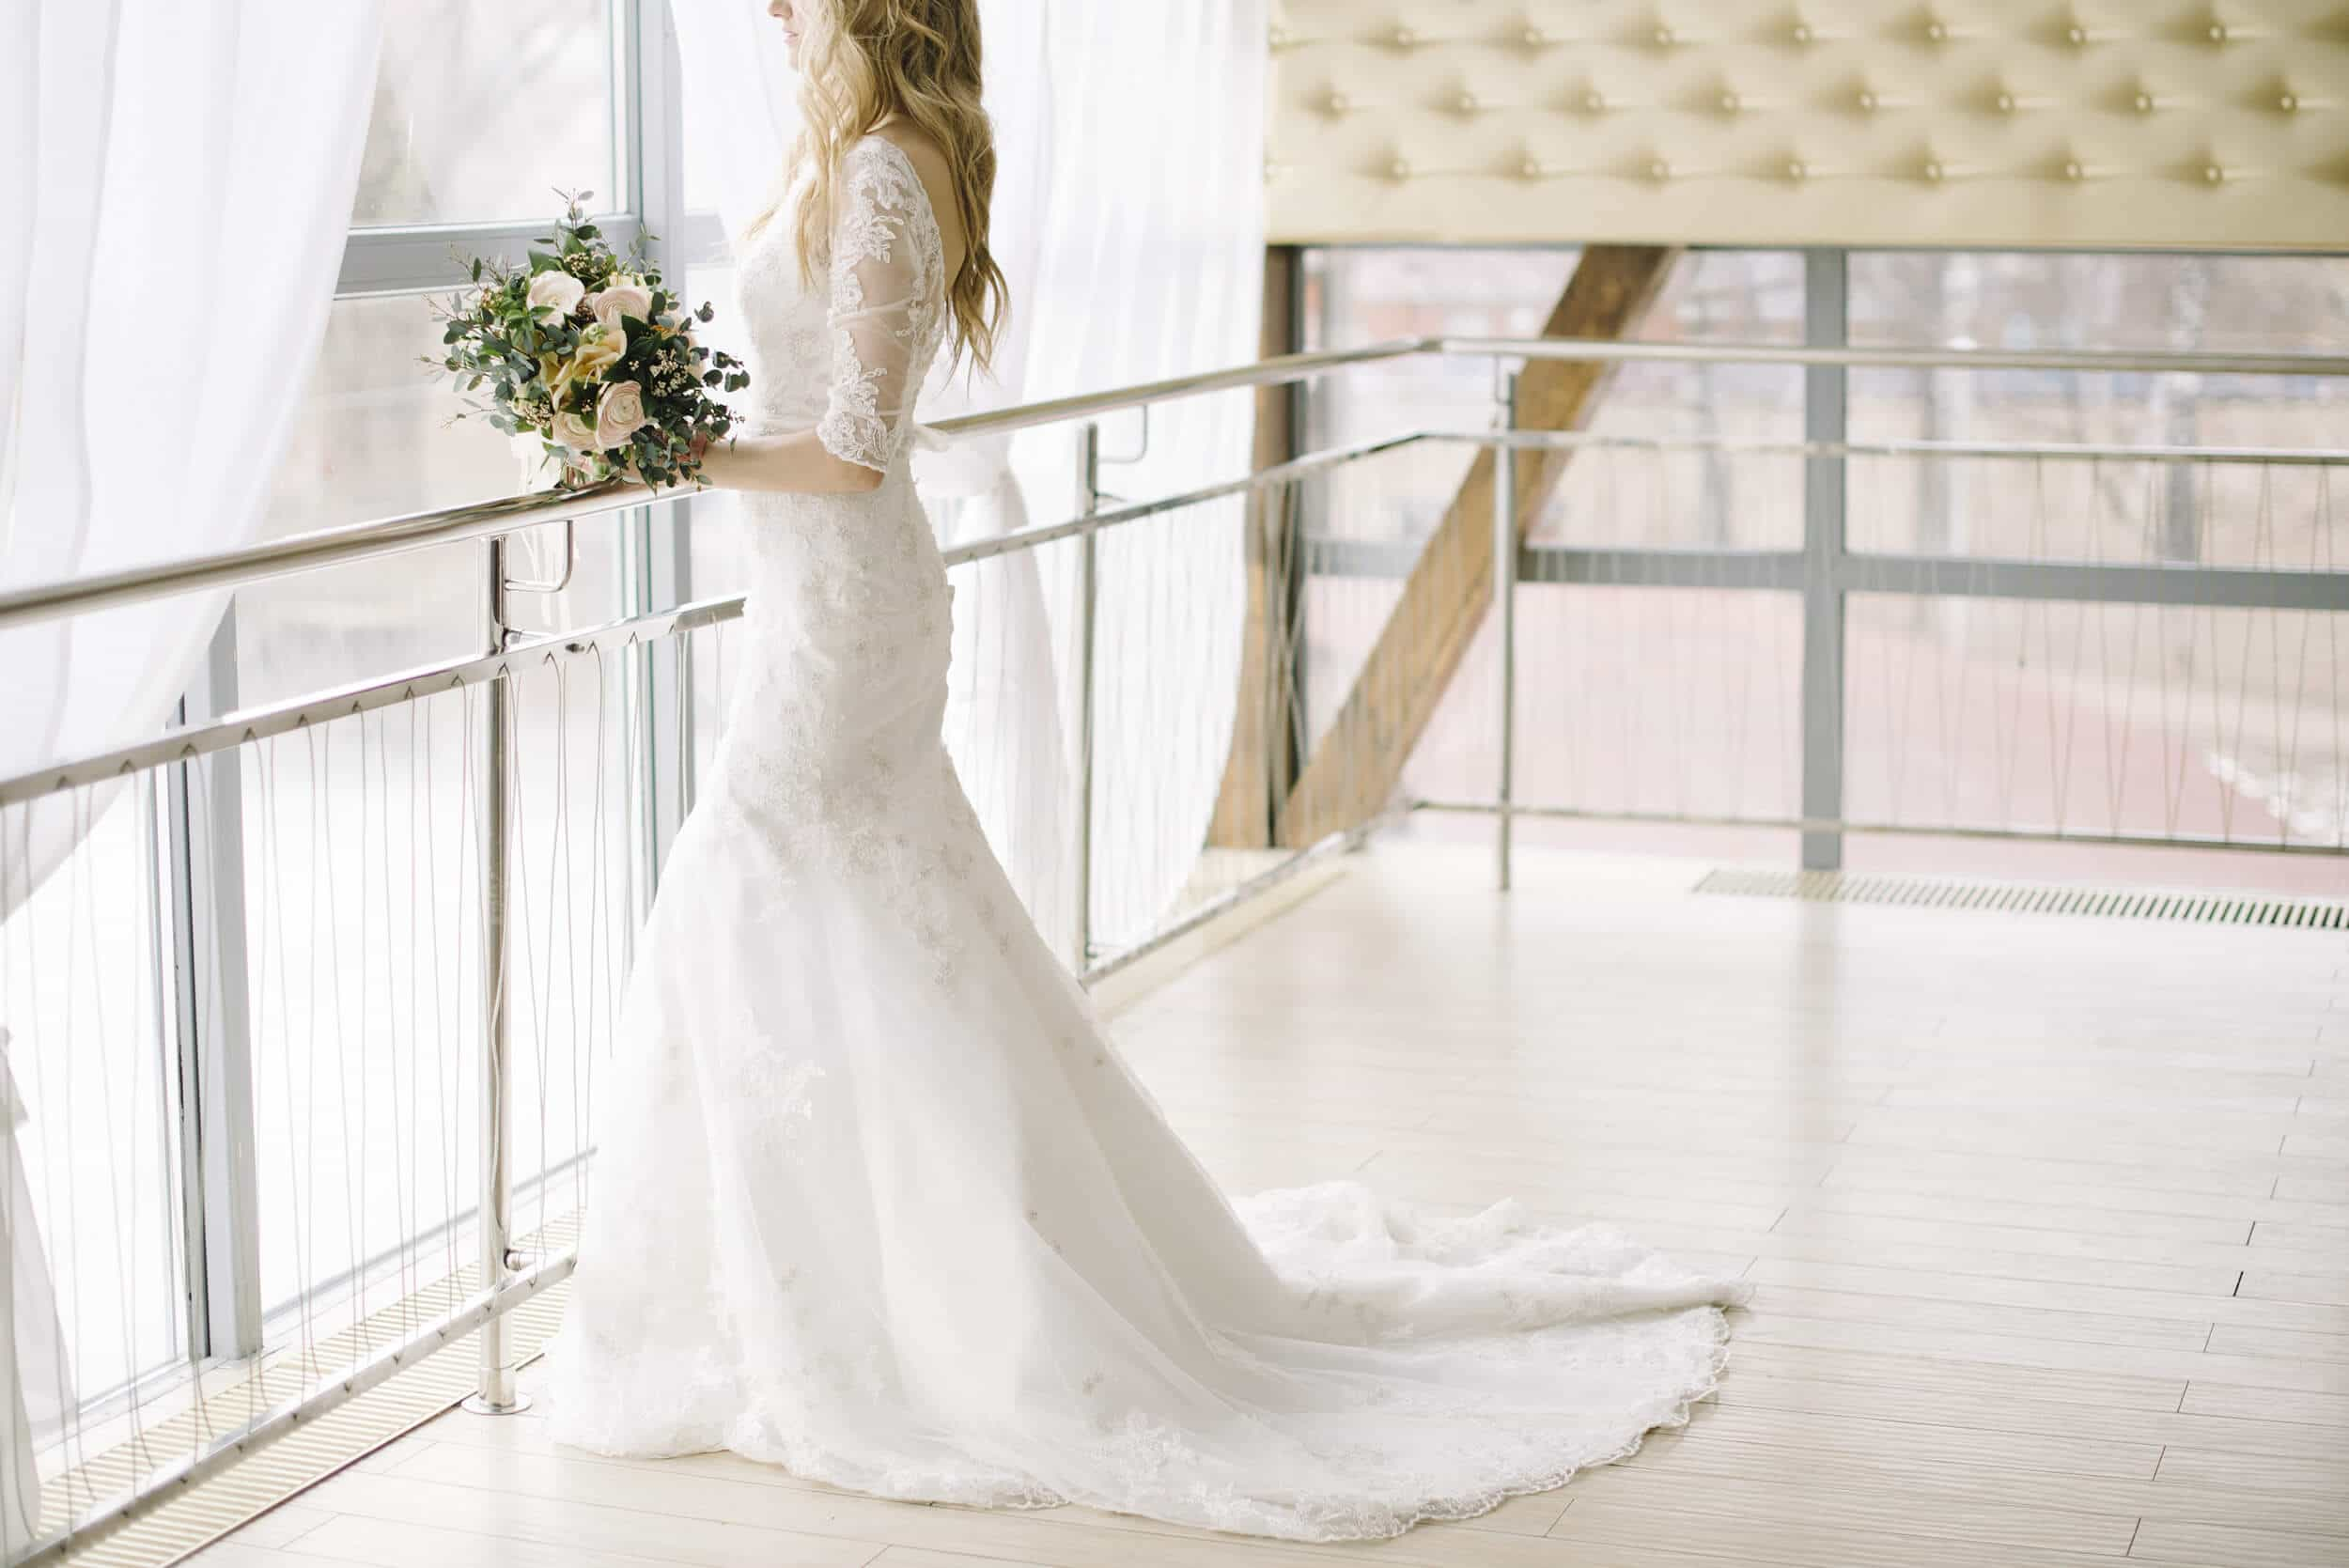 NYC wedding gown cleaning and preservation